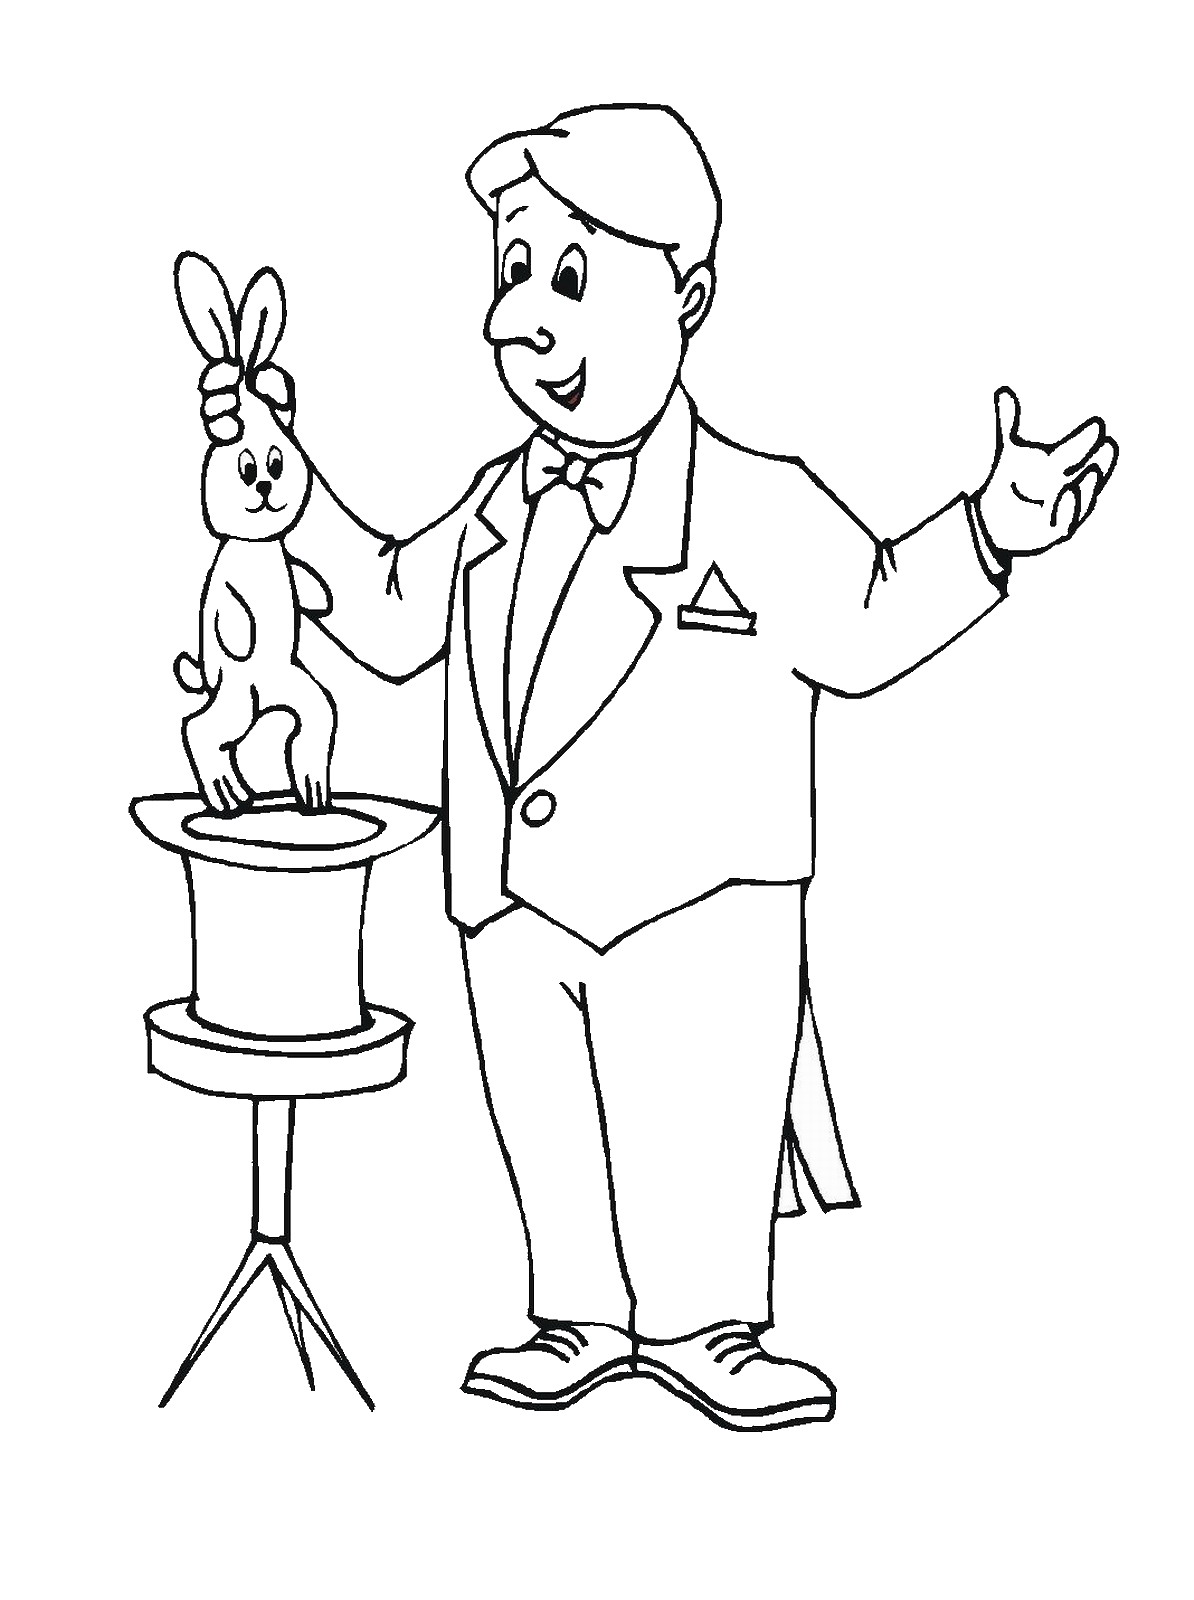 magic coloring page rainbow magic coloring pages to download and print for free coloring page magic